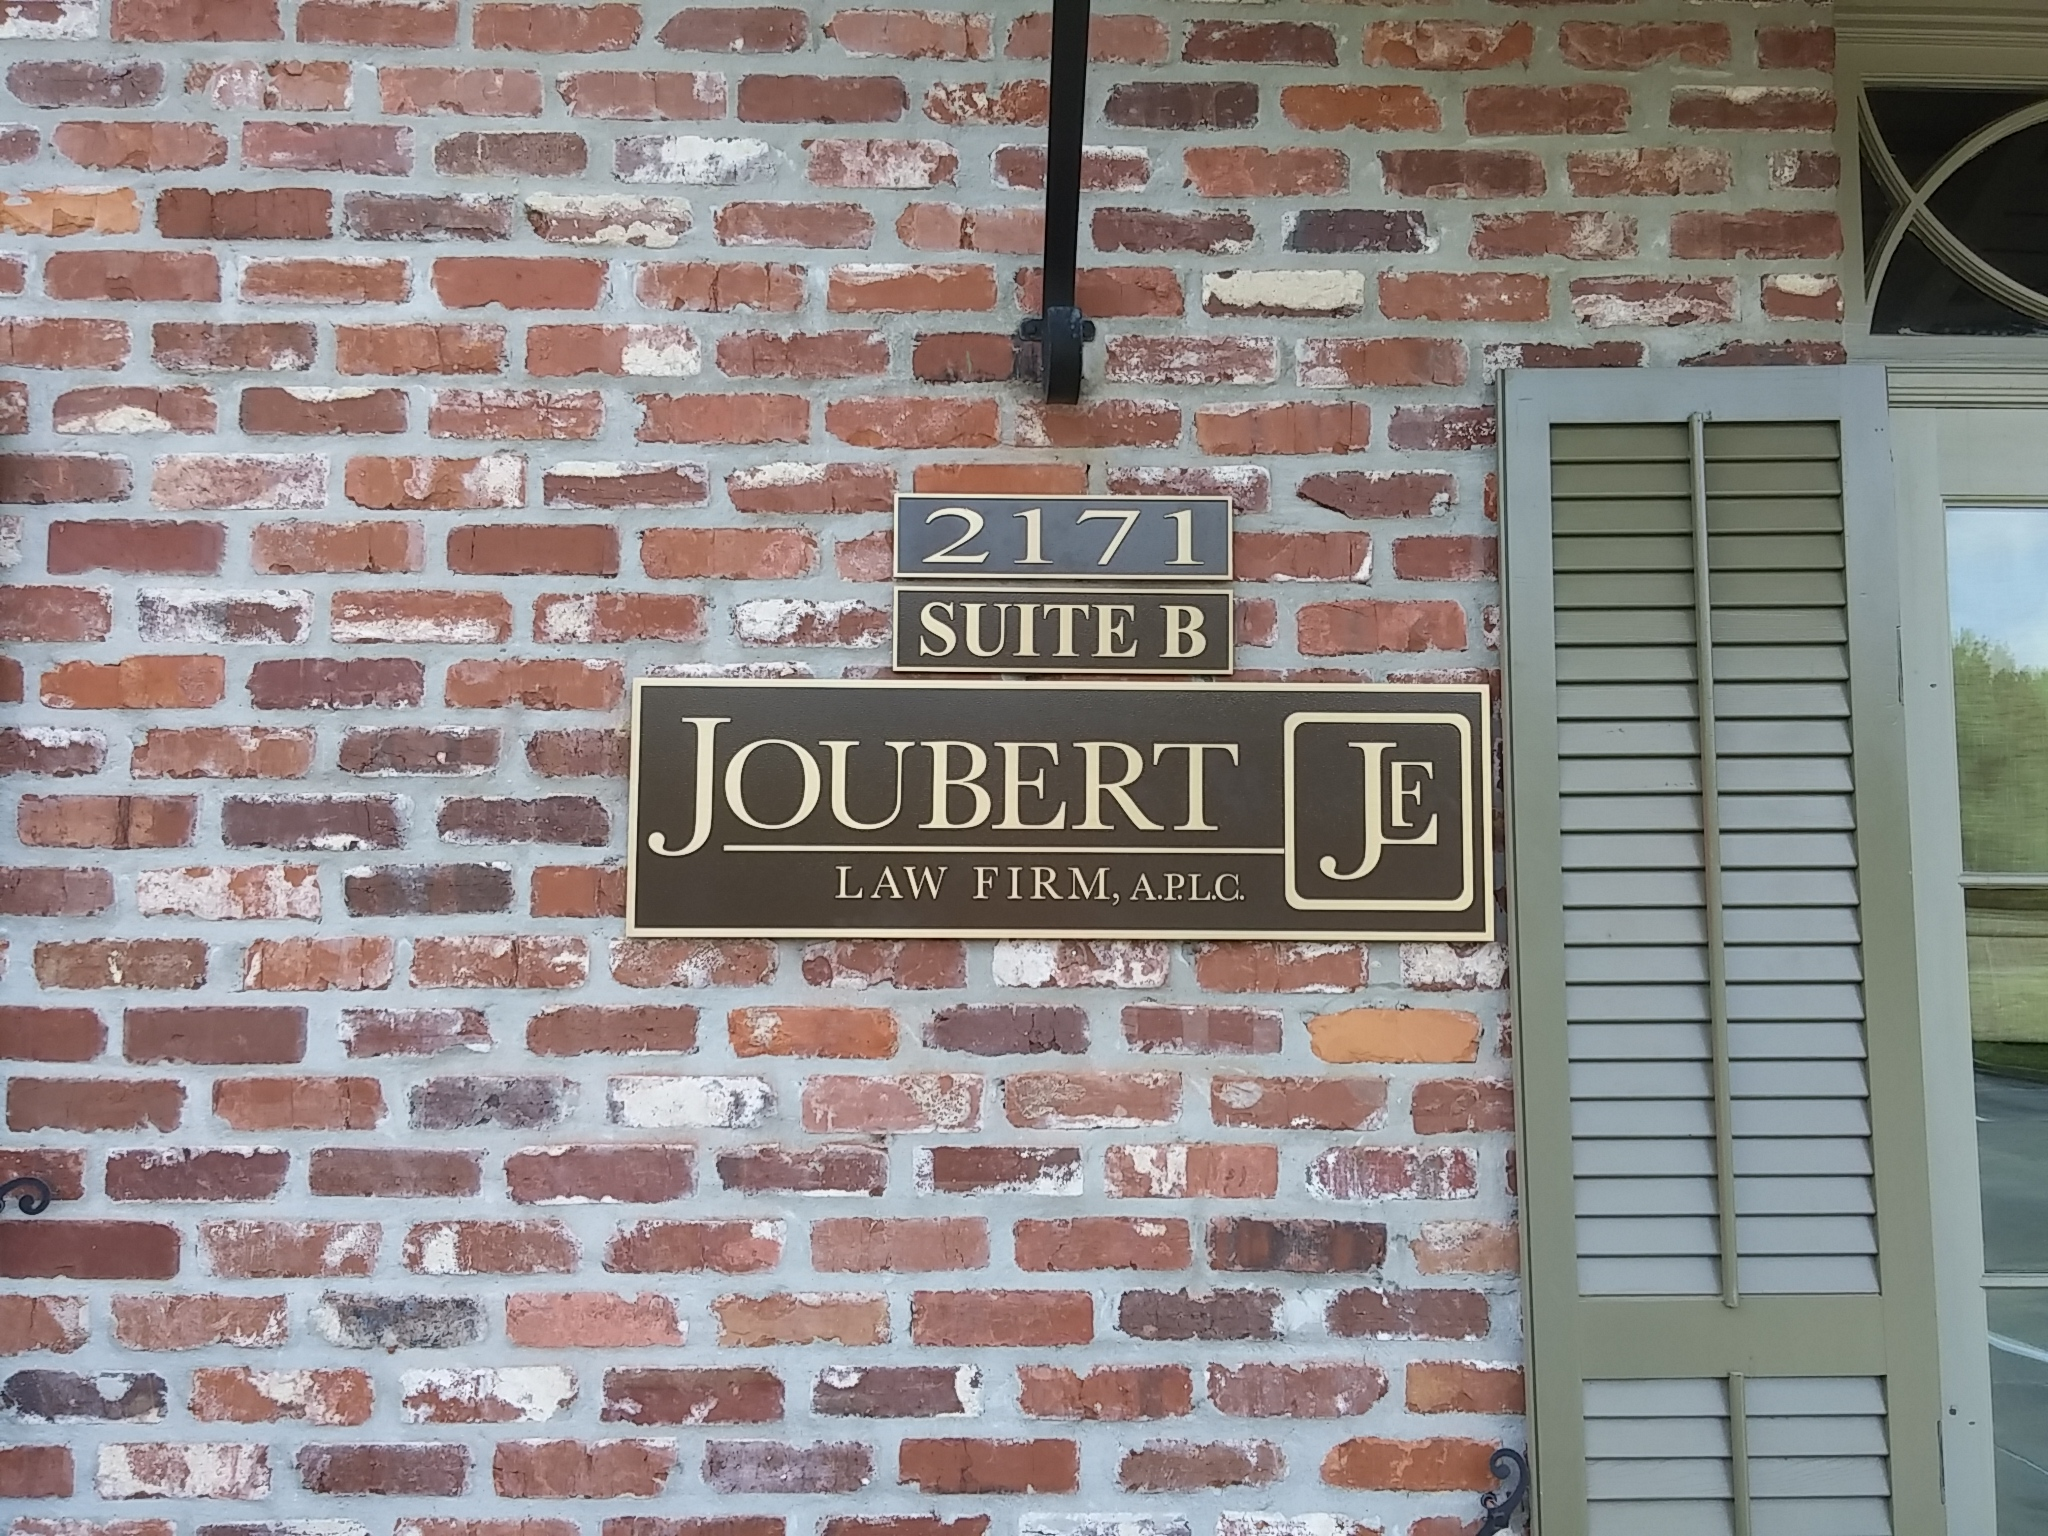 Joubert JF Bronze Plaque Sign - Greater Baton Rouge Signs